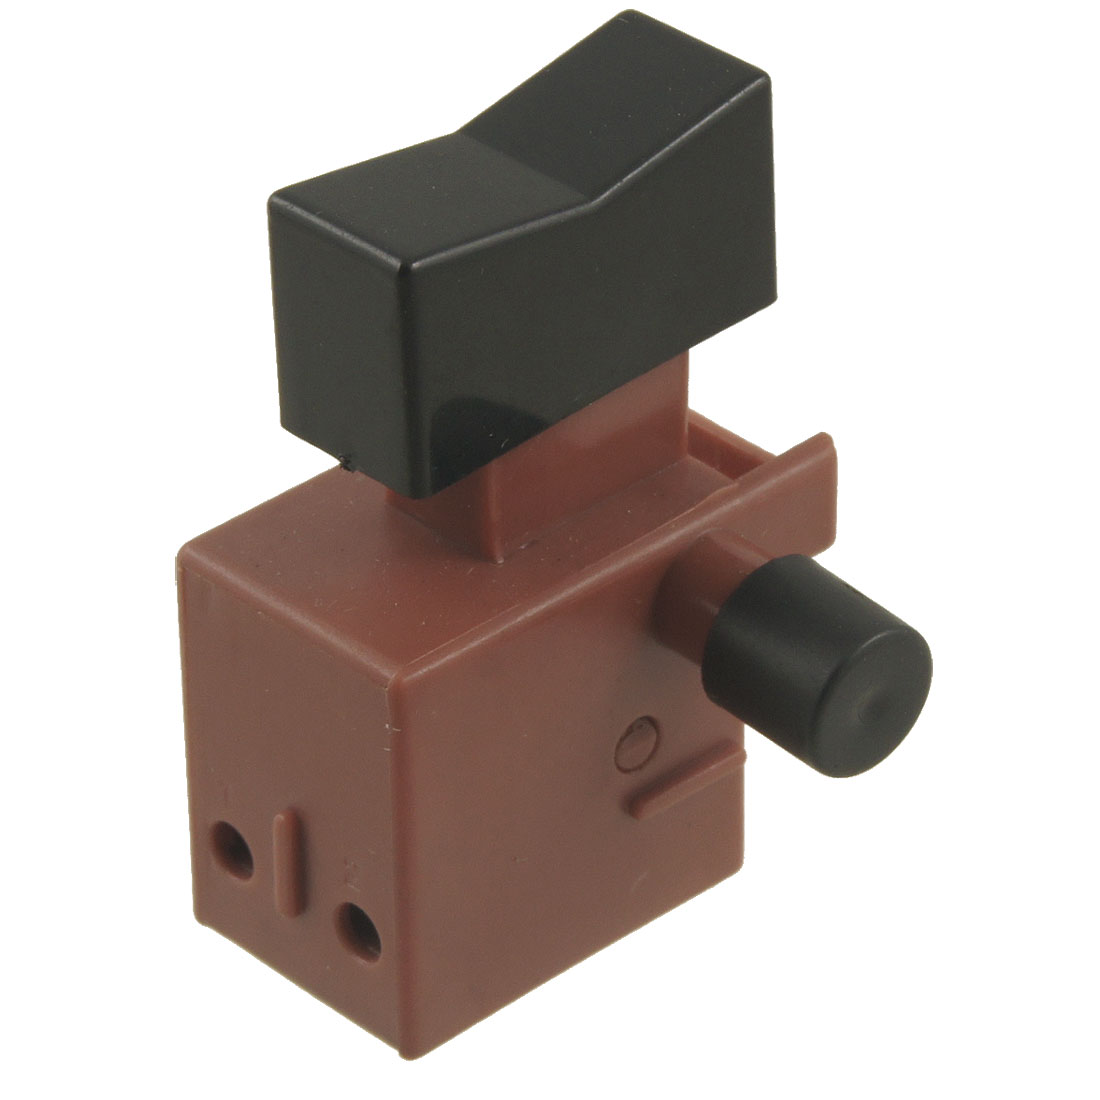 Electric Power Tool DPST AC Trigger Switch 4A/250V 8A/125V